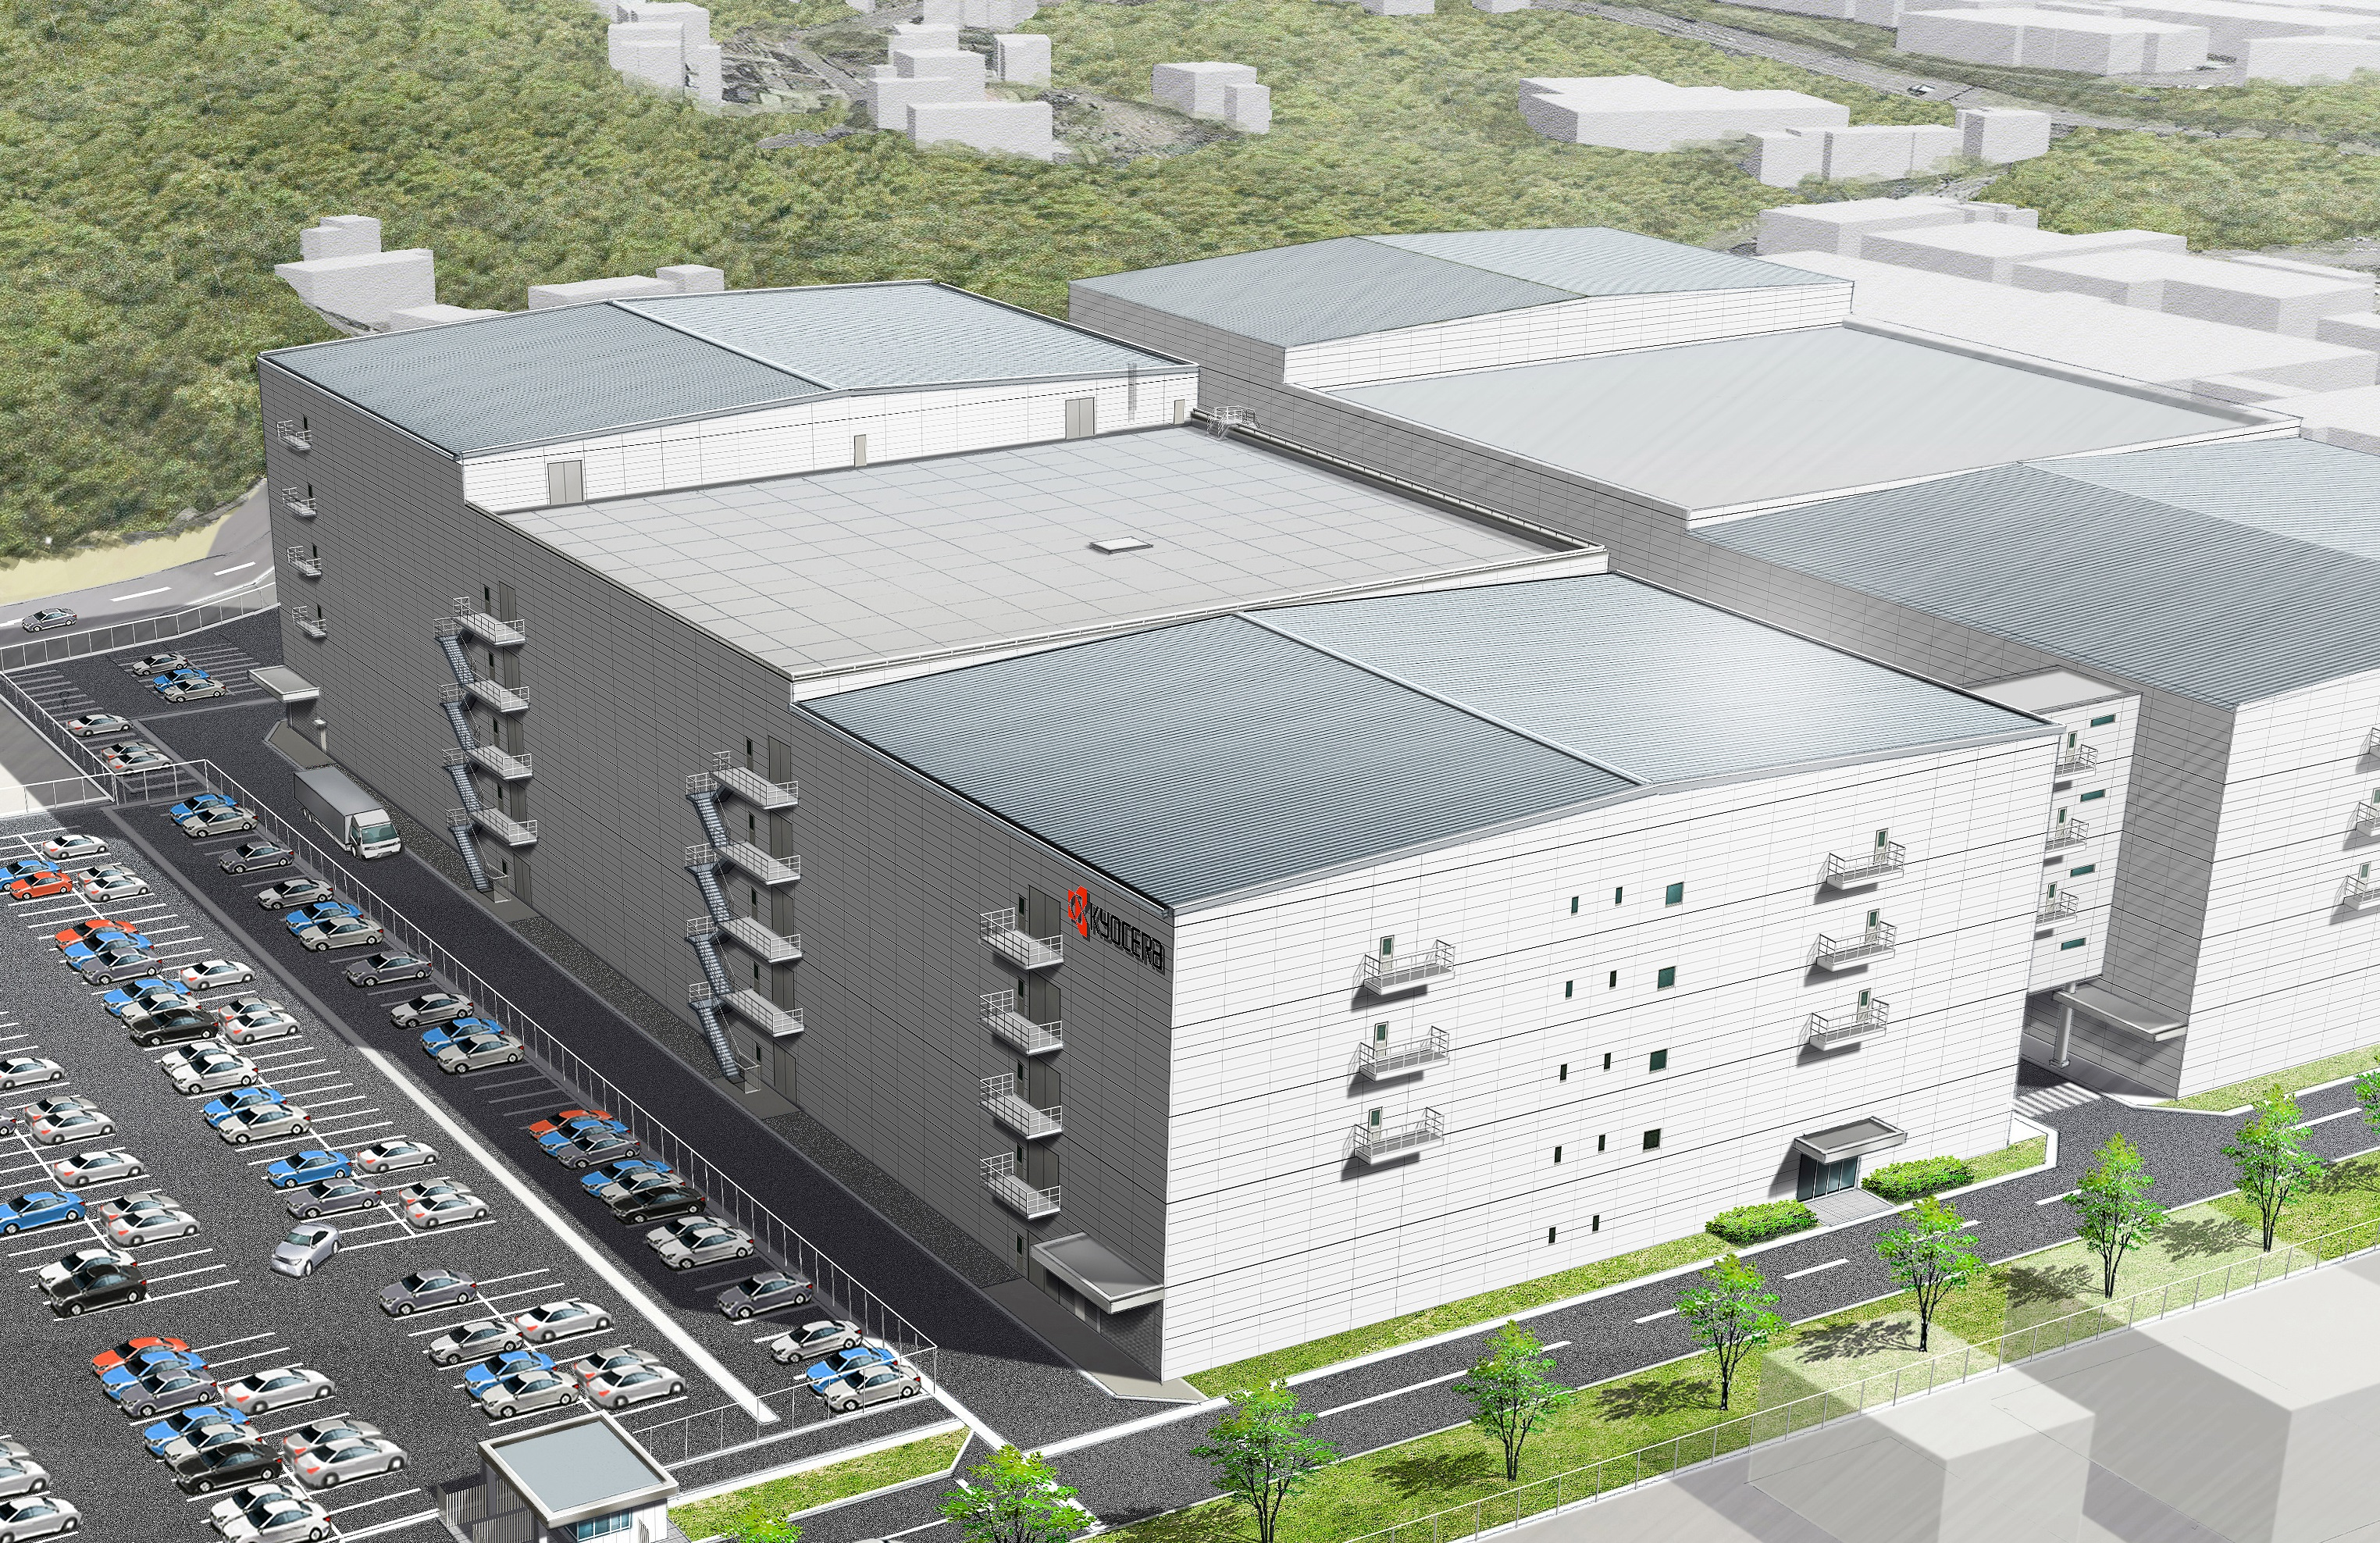 kyocera_to_build_new_plant_in_kagoshima__japan__for_ceramic_microelectronic_packages.-cps-32211-image.cpsarticle.jpg